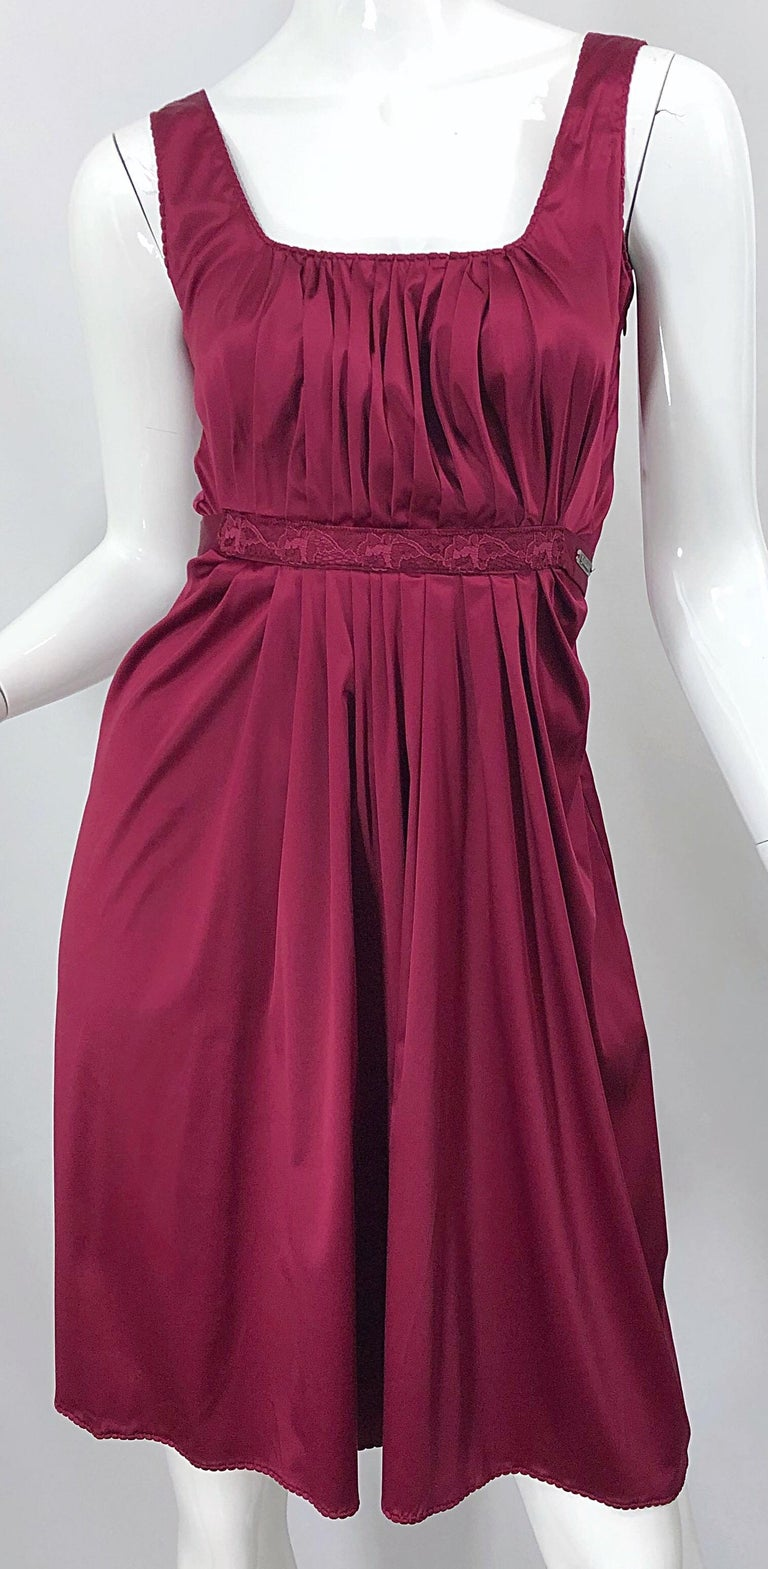 2000s John Galliano Sz 42 (US 6 / 8) Burgundy Silk Feather Brooch Babydoll Dress In Excellent Condition For Sale In Chicago, IL